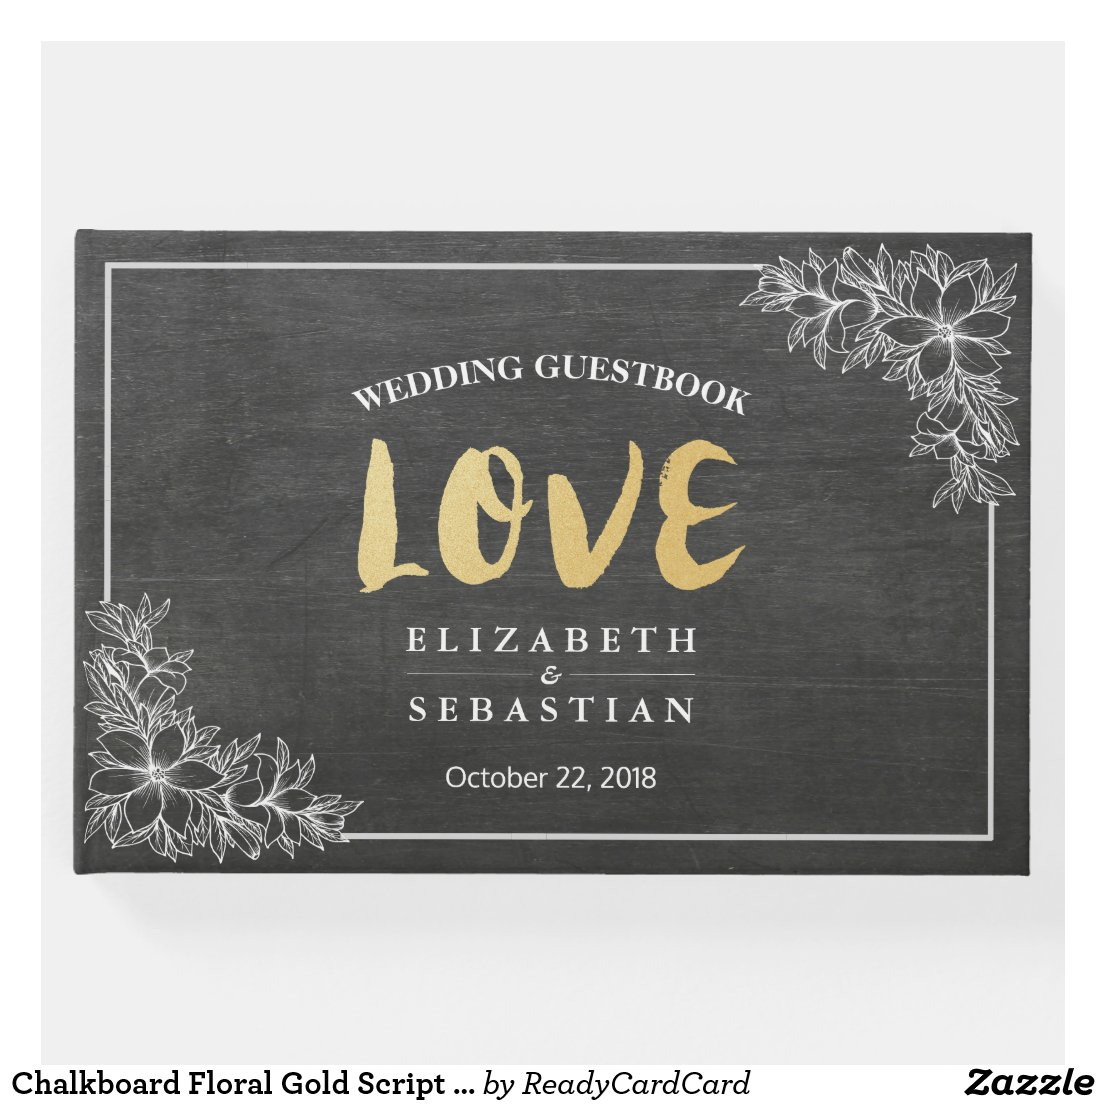 Chalkboard Floral Gold Script Wedding Guestbook